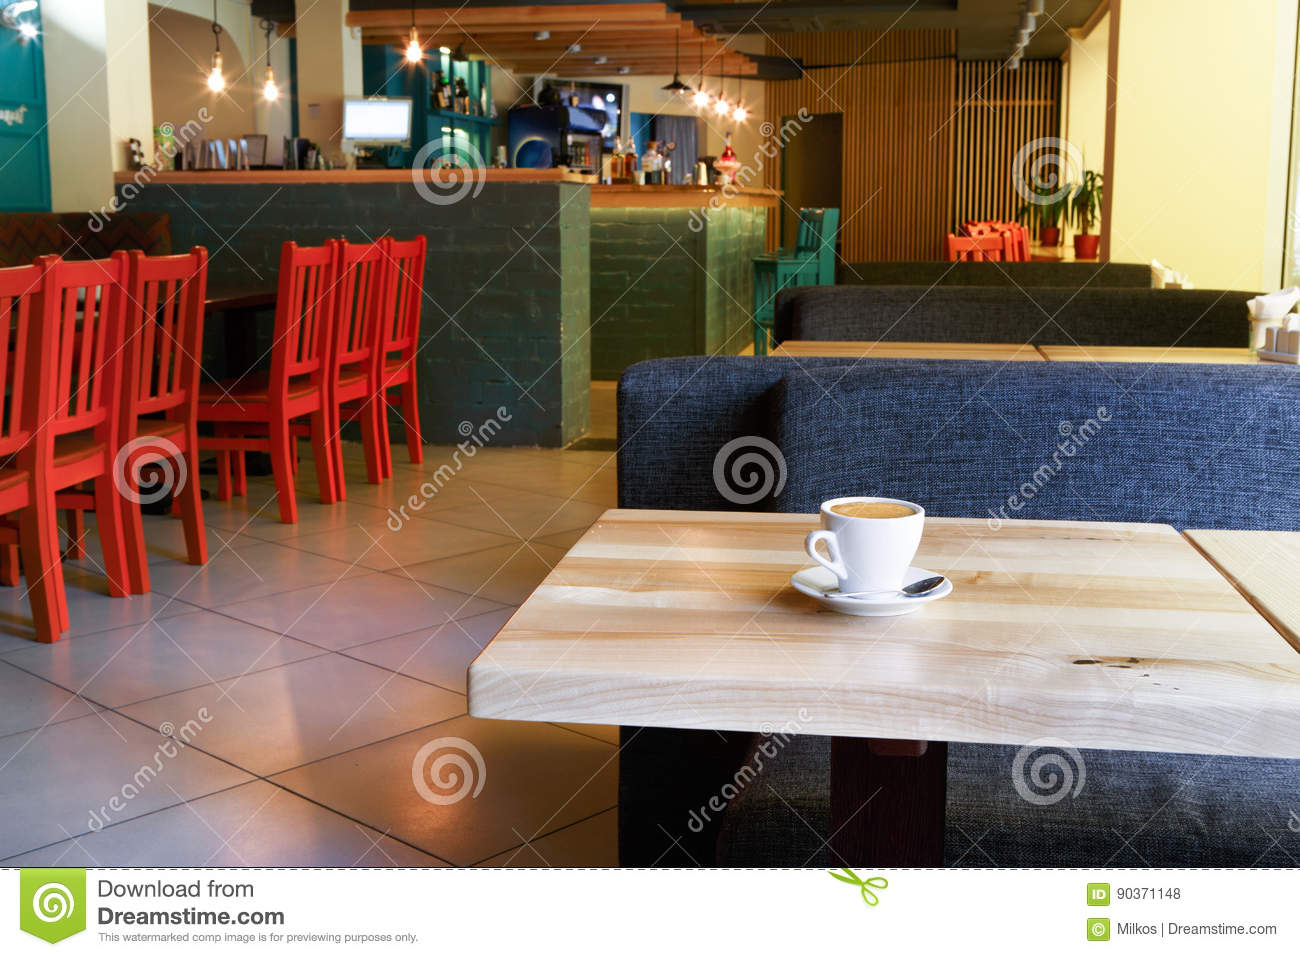 Modern Restaurant Bar Or Cafe Interior Stock Photo Image Of Lamp Architecture 90371148